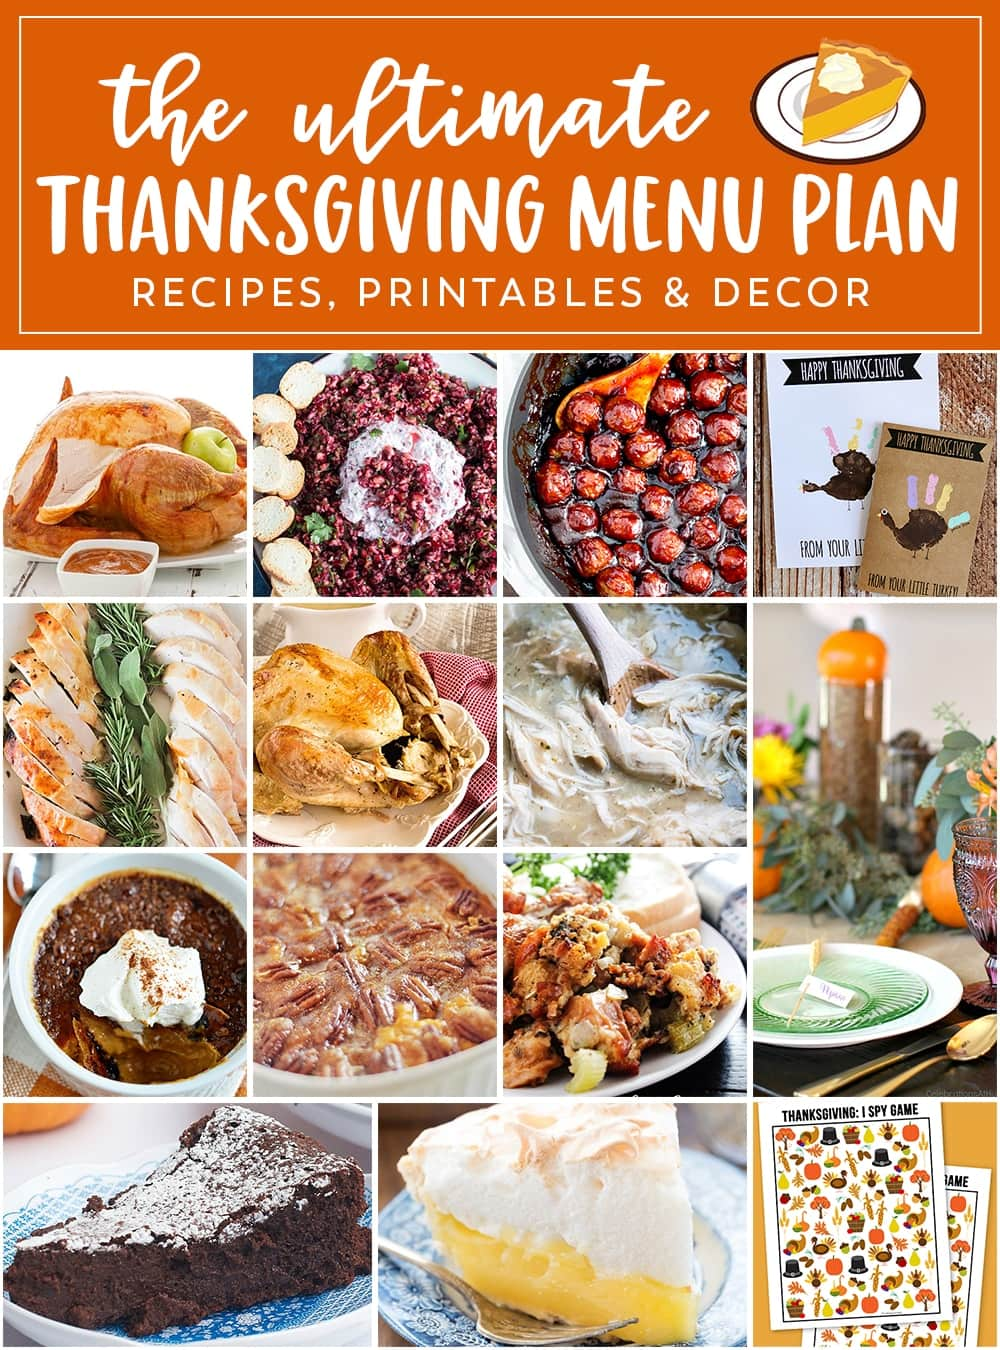 photograph about Thanksgiving Menu Planner Printable titled Thanksgiving Menu Planner - Julies Eats Snacks ®